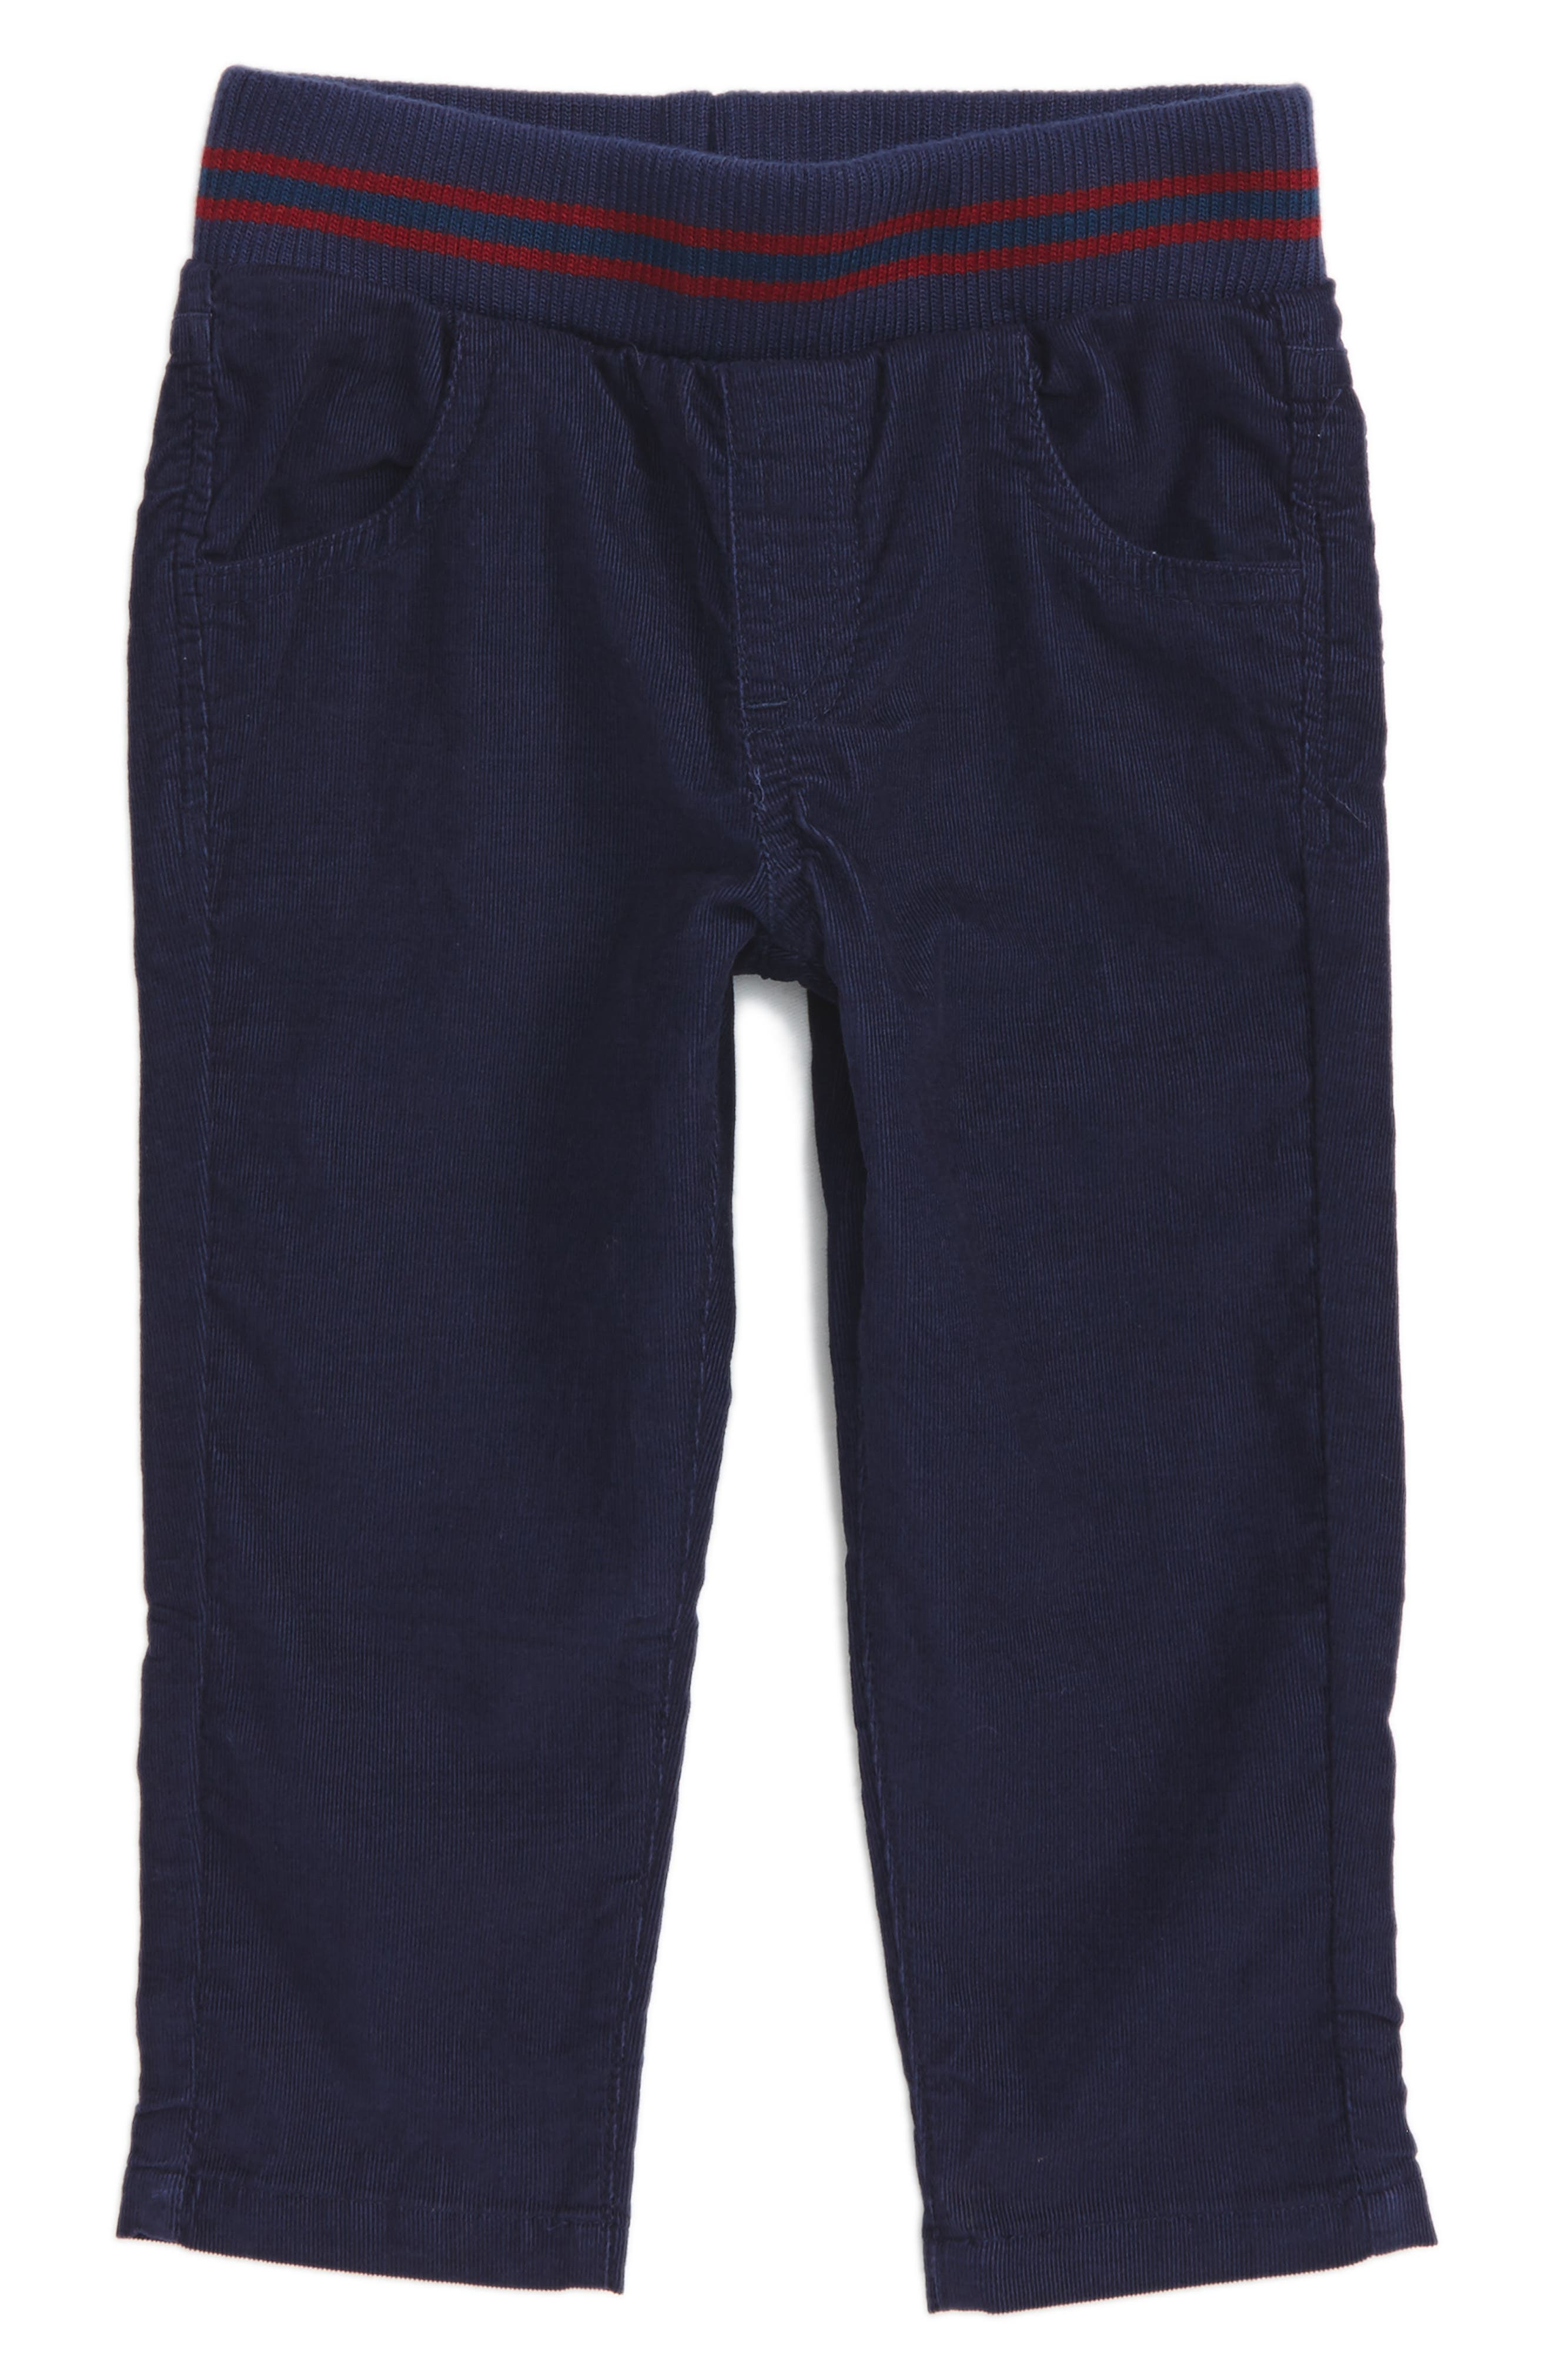 Ethan Corduroy Pants,                             Main thumbnail 1, color,                             410